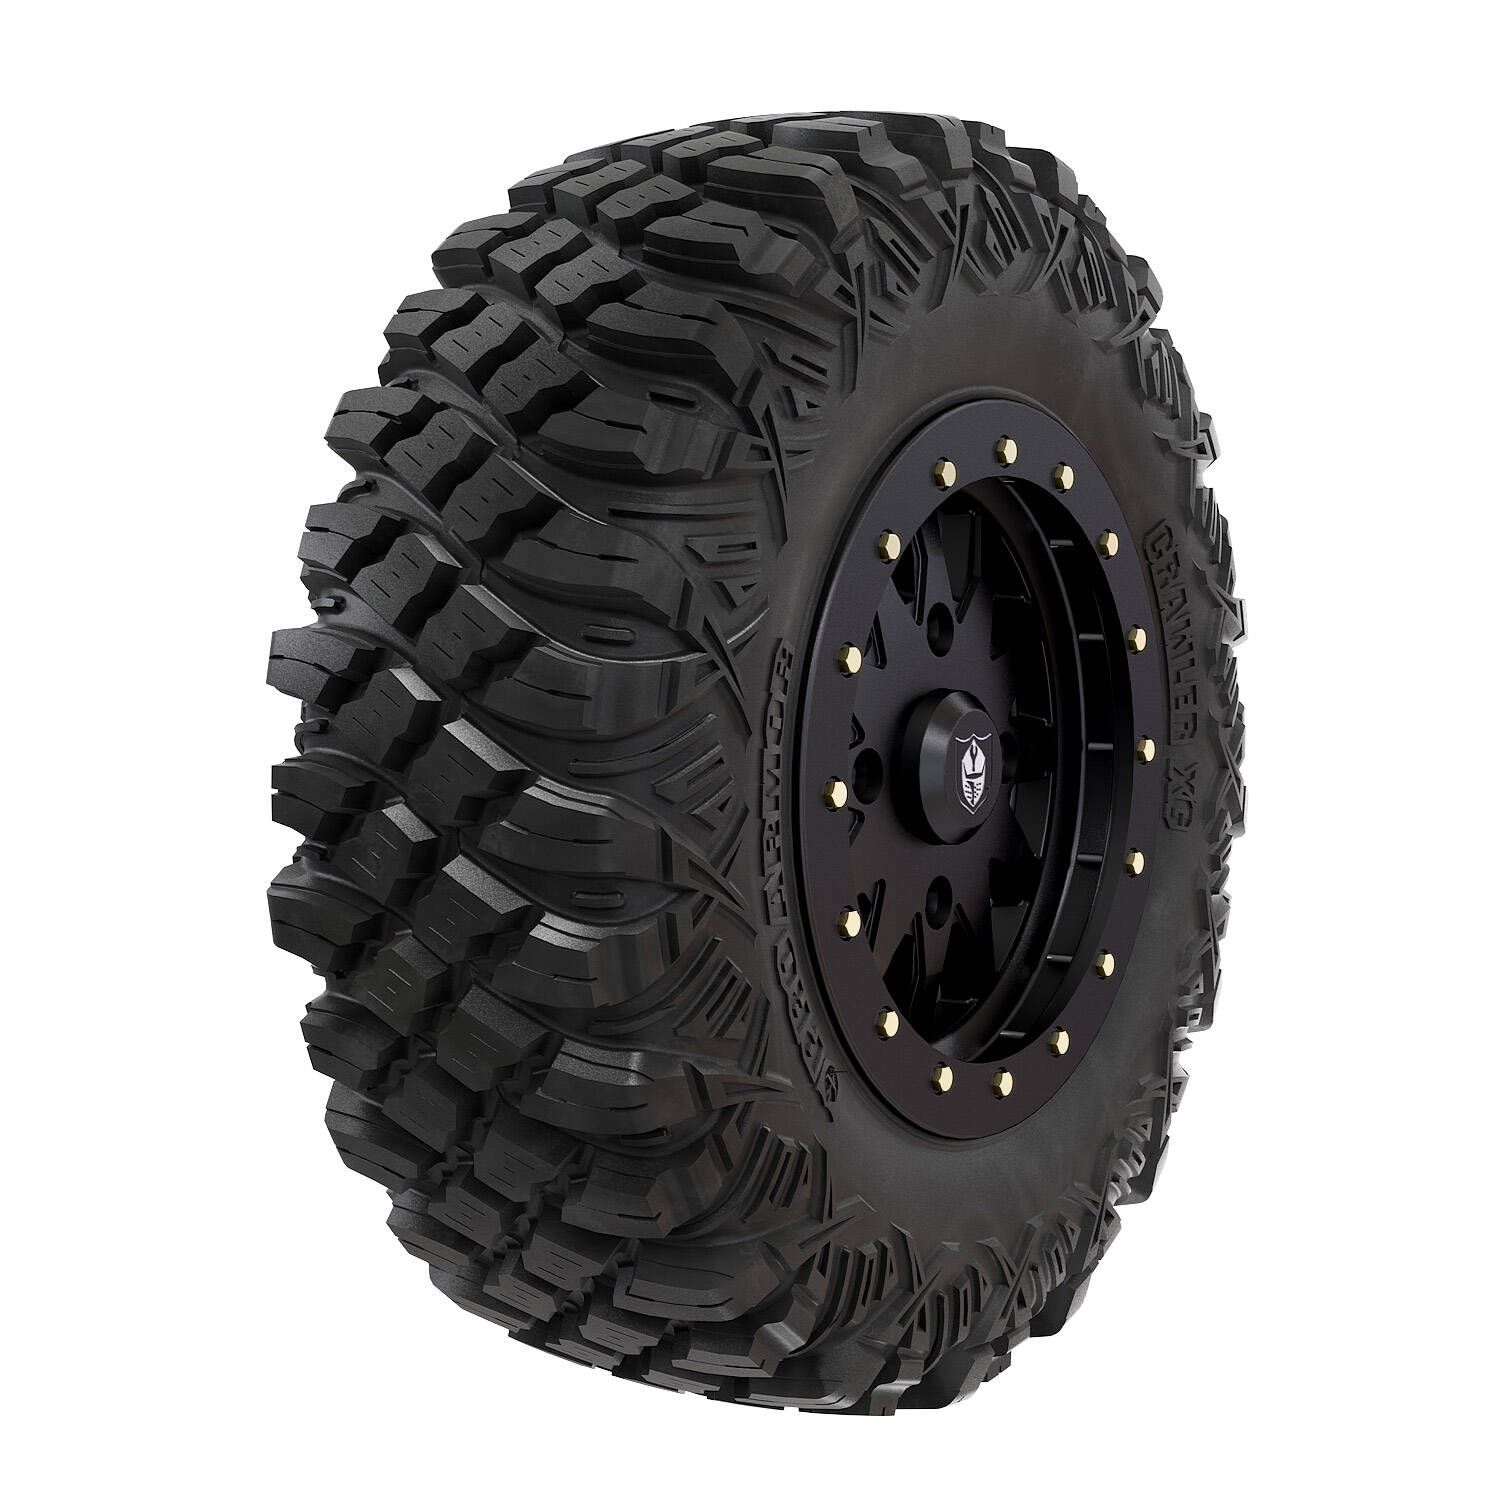 Pro Armor® Wheel & Tire Set: Halo - Matte Black & Crawler XG - 30""